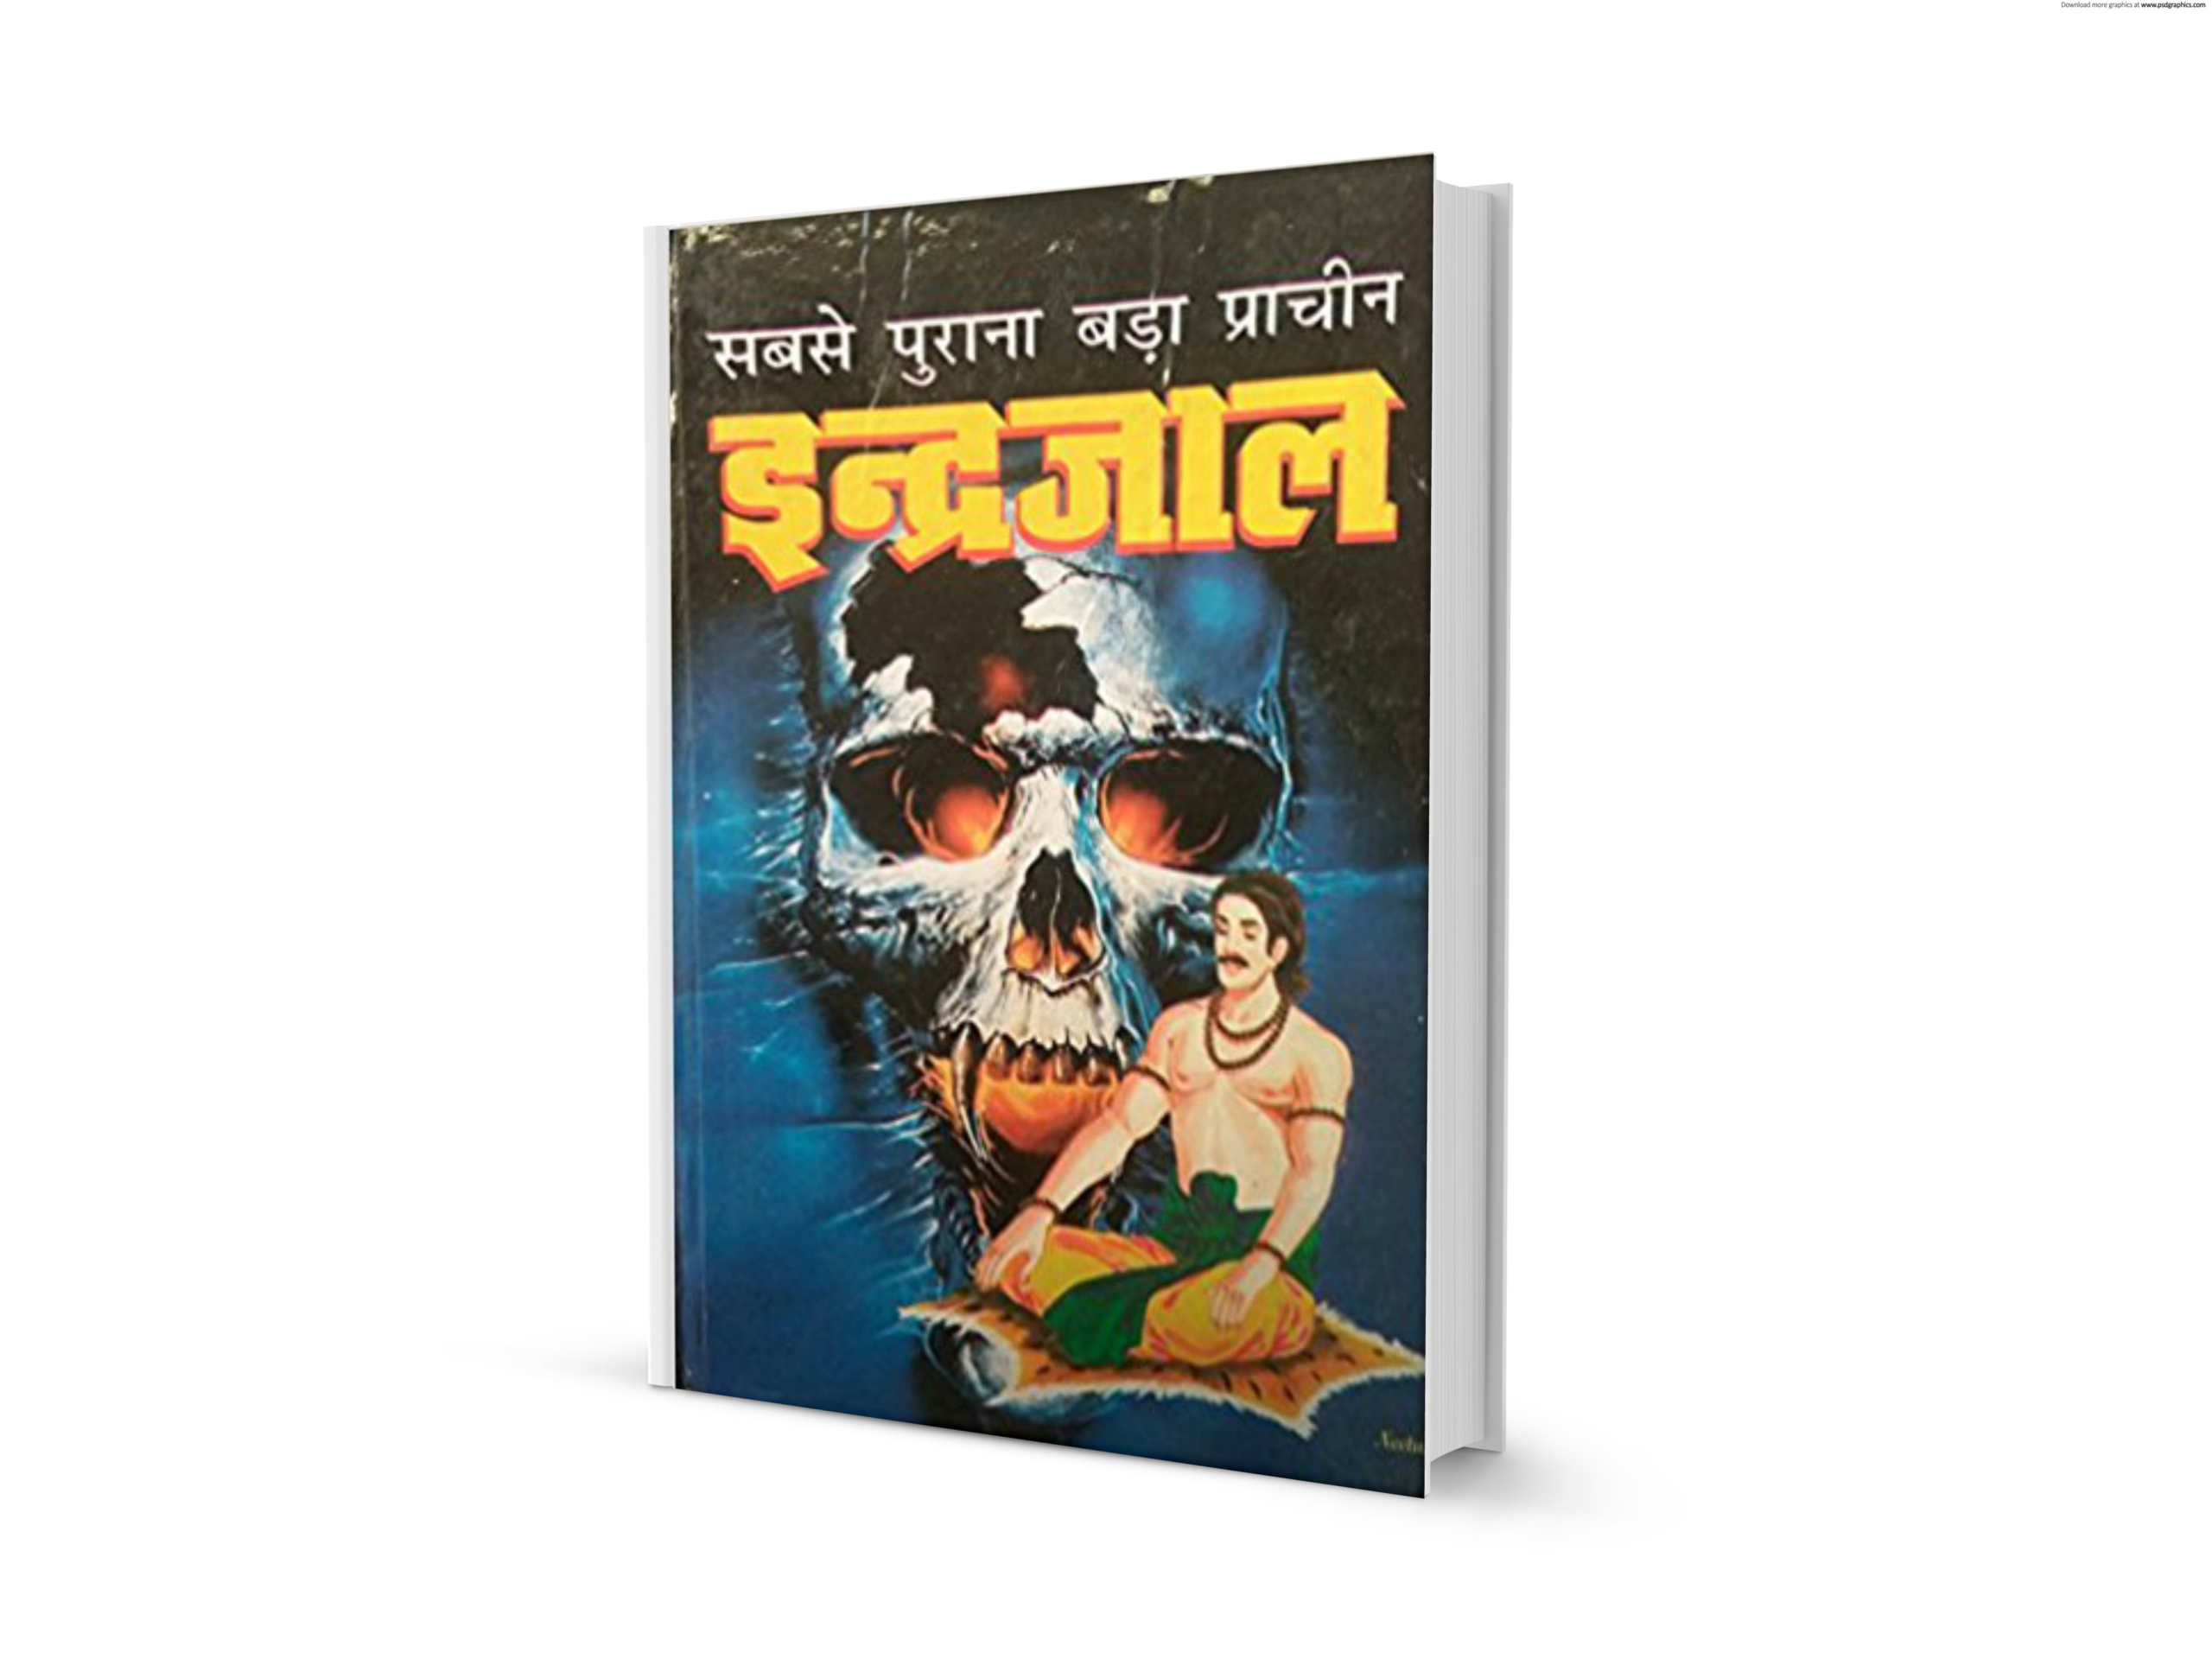 Indrajal Book In Hindi Pdf Download Acquire